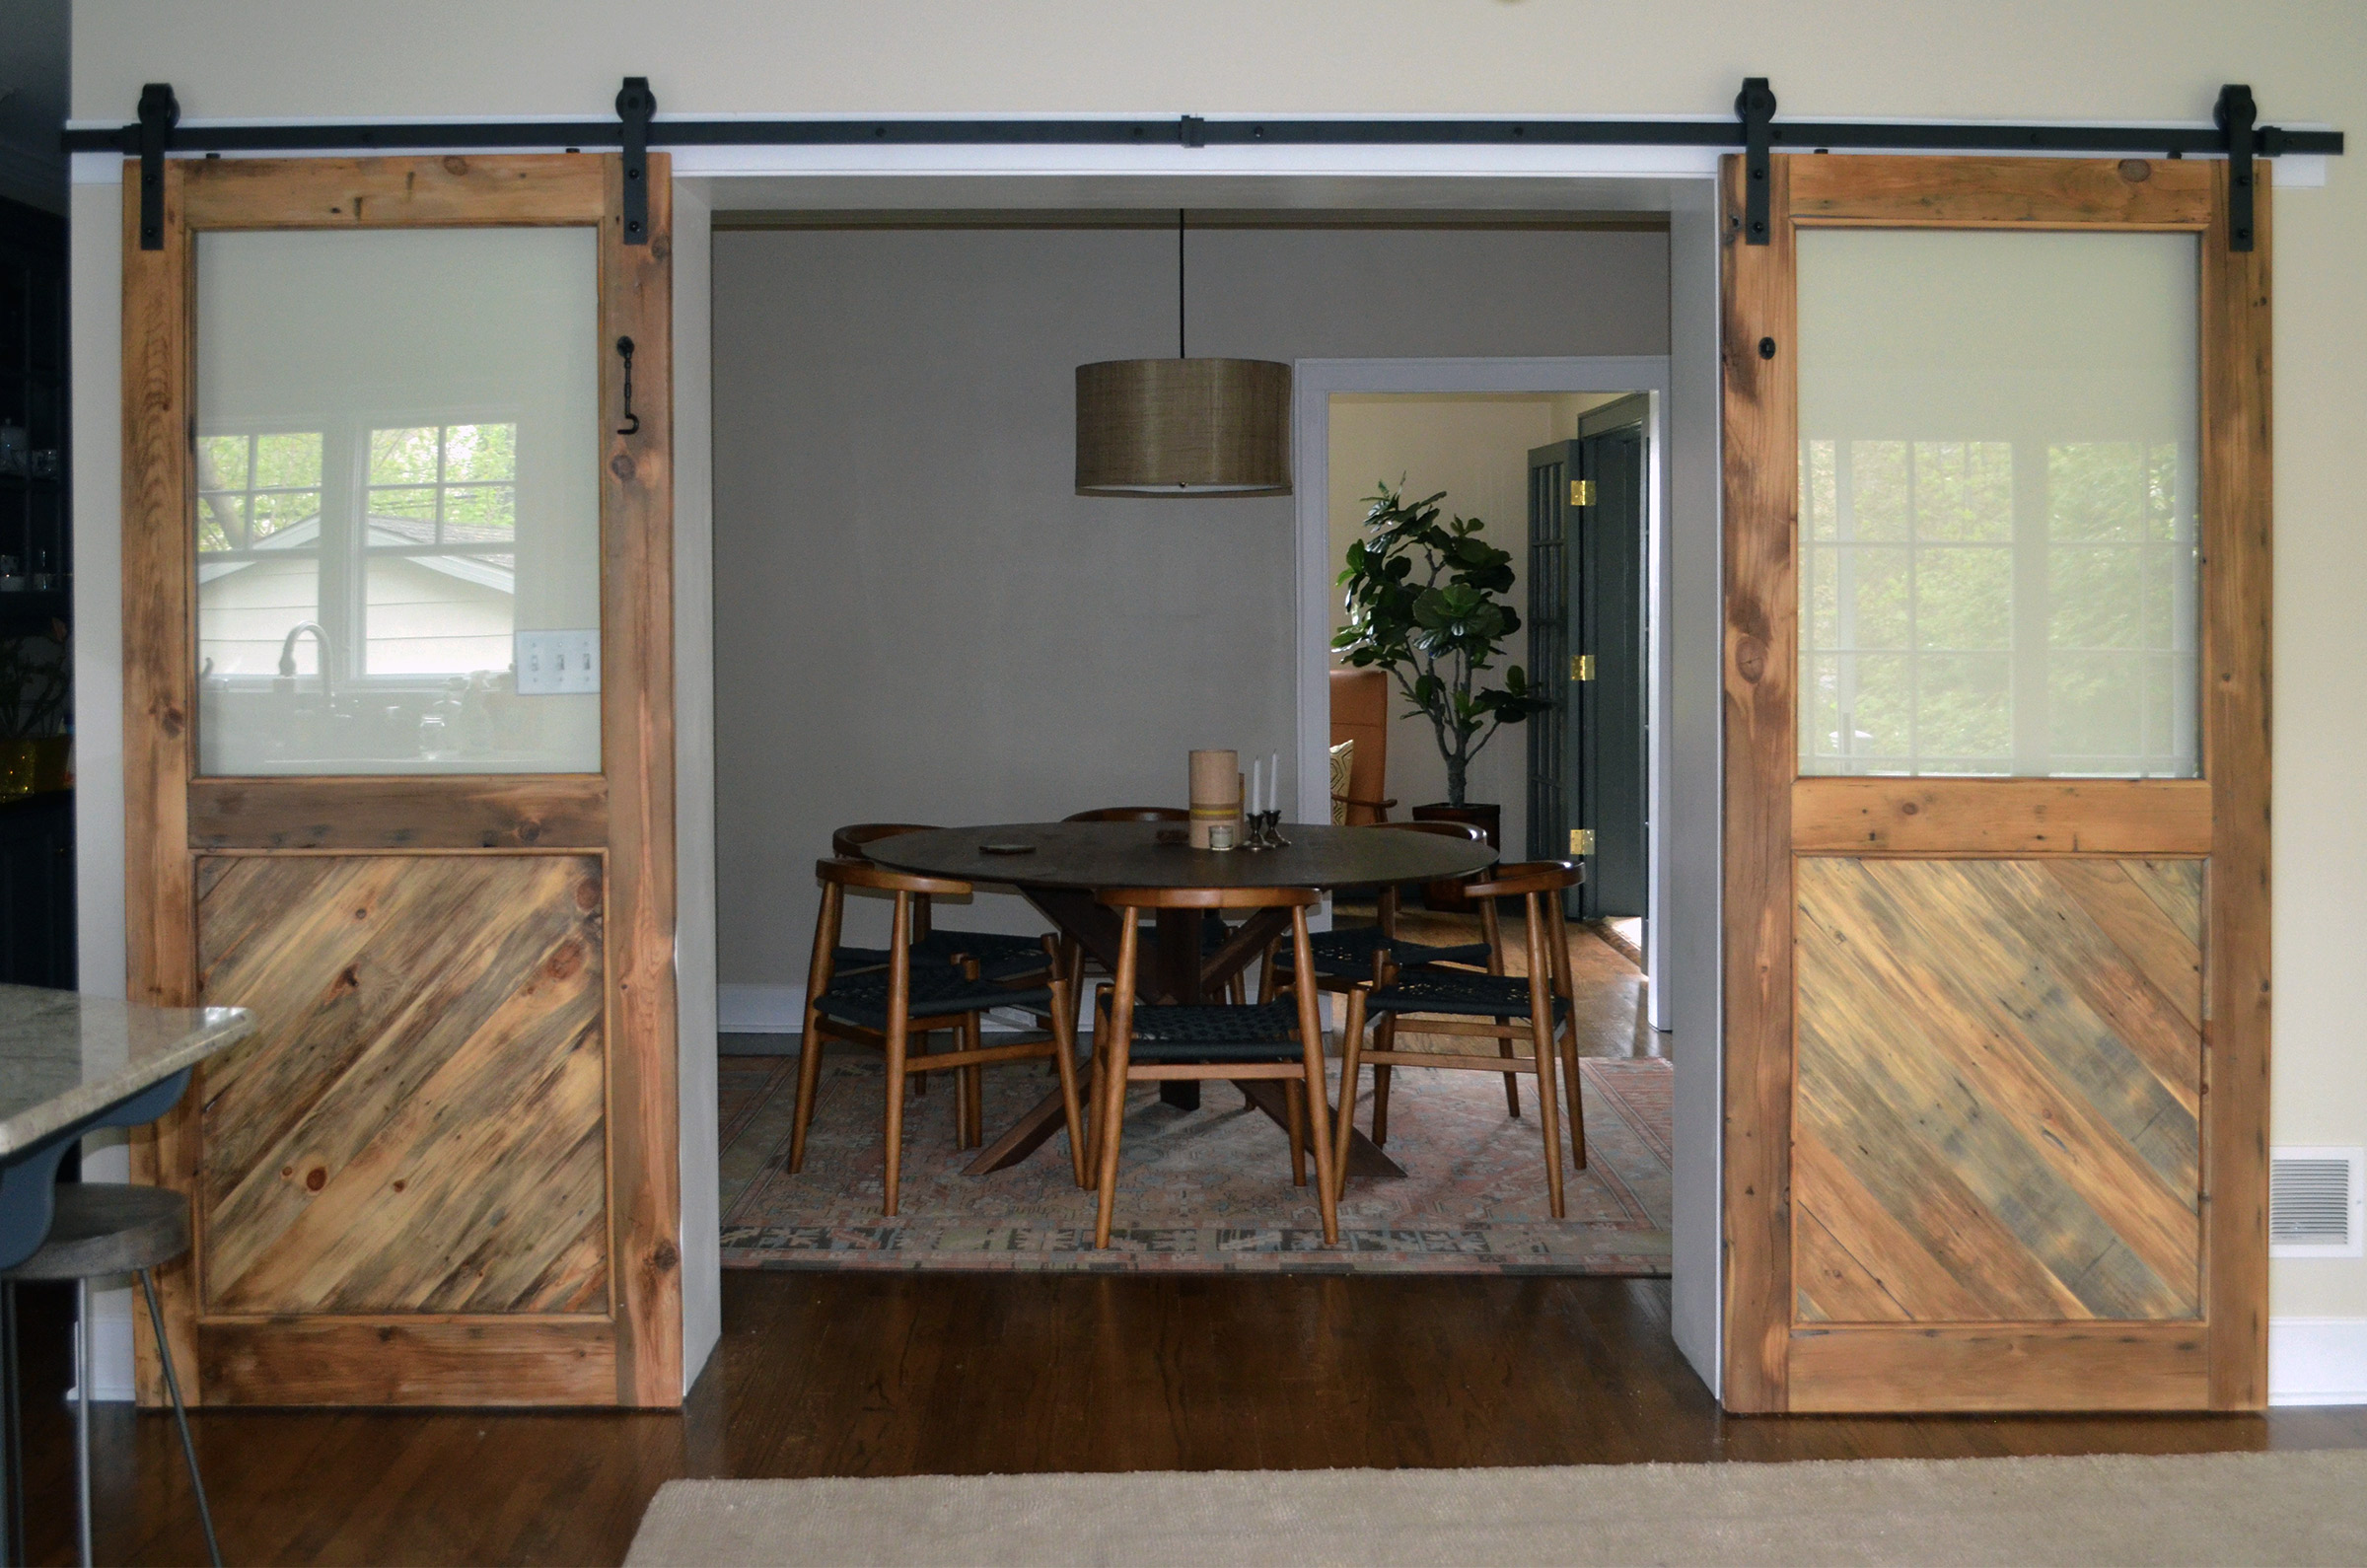 youtube barns to how watch door the install easy rolling so simple smooth barn wood doors oh